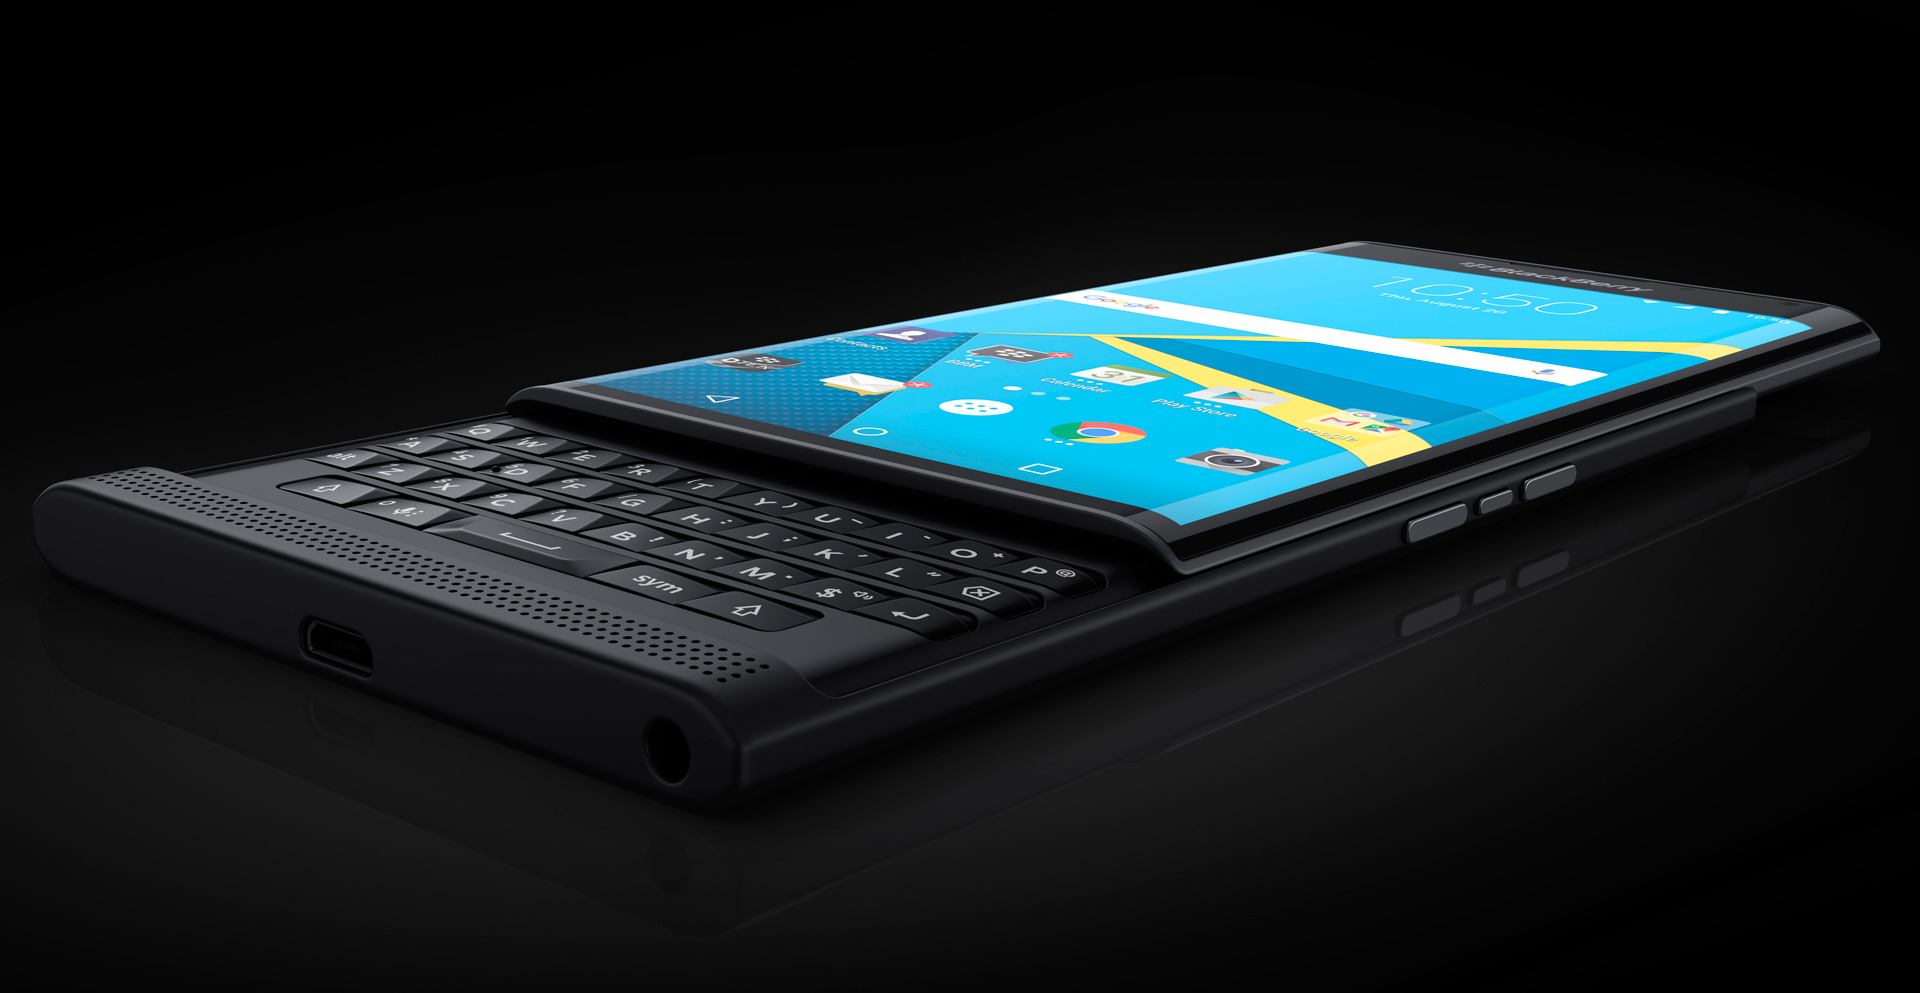 The BlackBerry Priv..the death knell of BlackBerry OS?